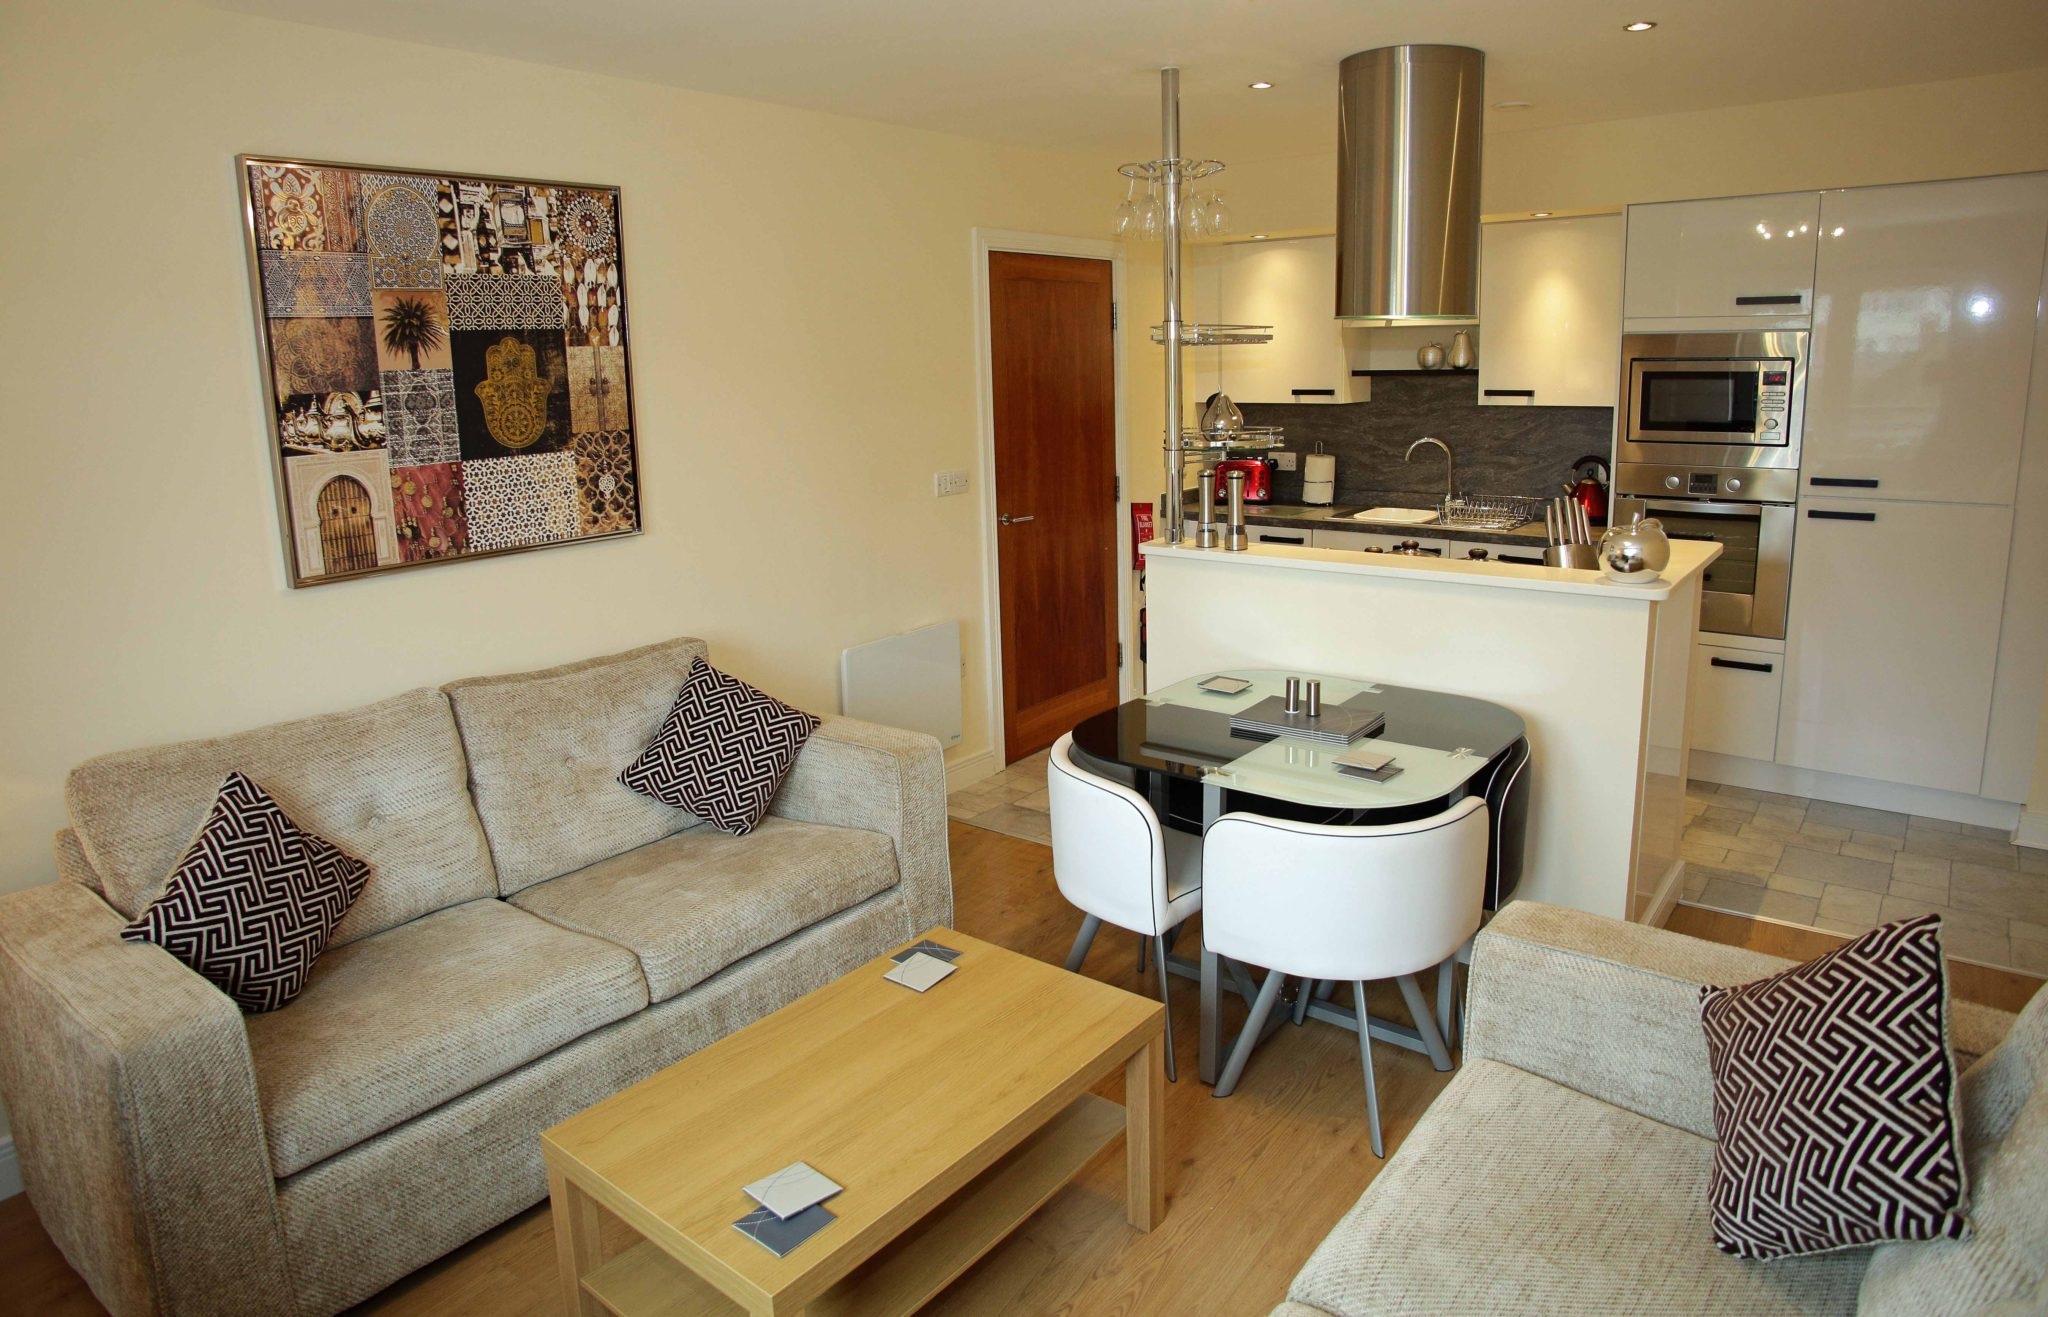 Corporate-Accommodation-Newcastle-UK-available-Now!Book-Serviced-Apartments-in-North-England-today-for-short-lets-&-relocation!-Parking,-Wifi,All-bills-incl-|-Urban-Stay